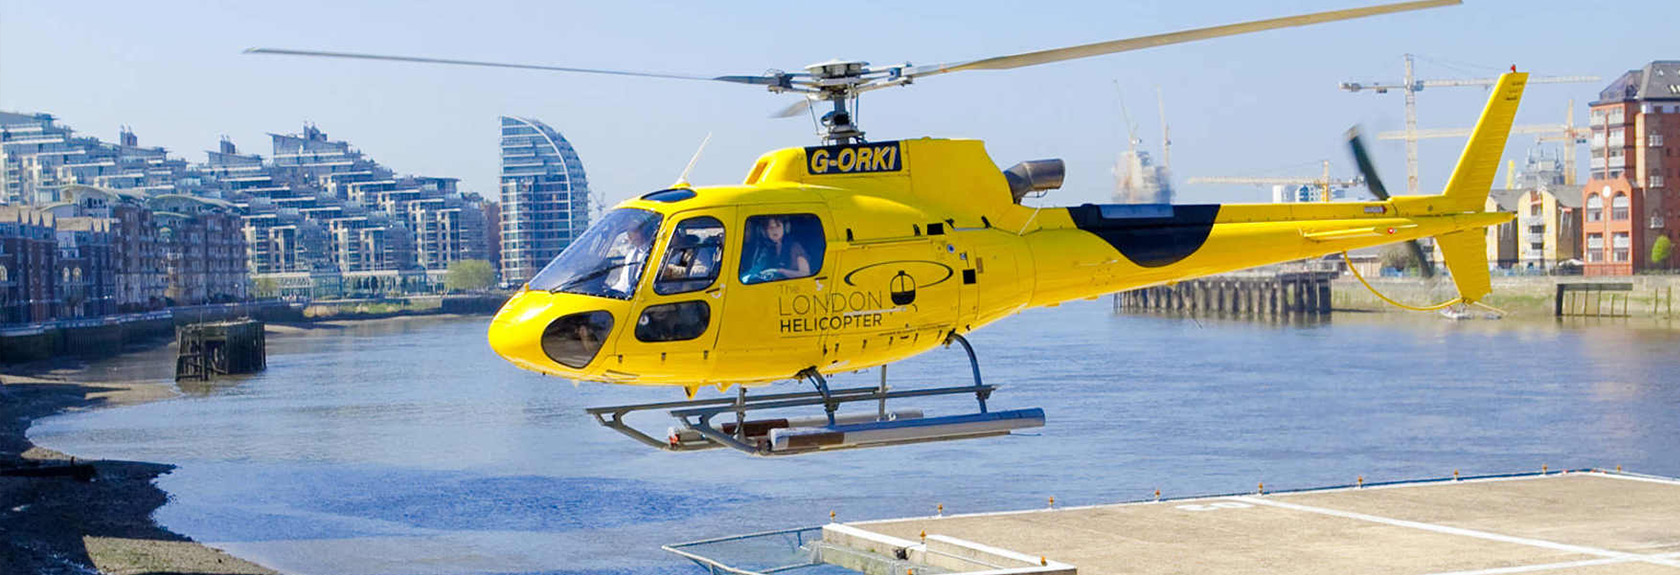 Londen helikopter tour